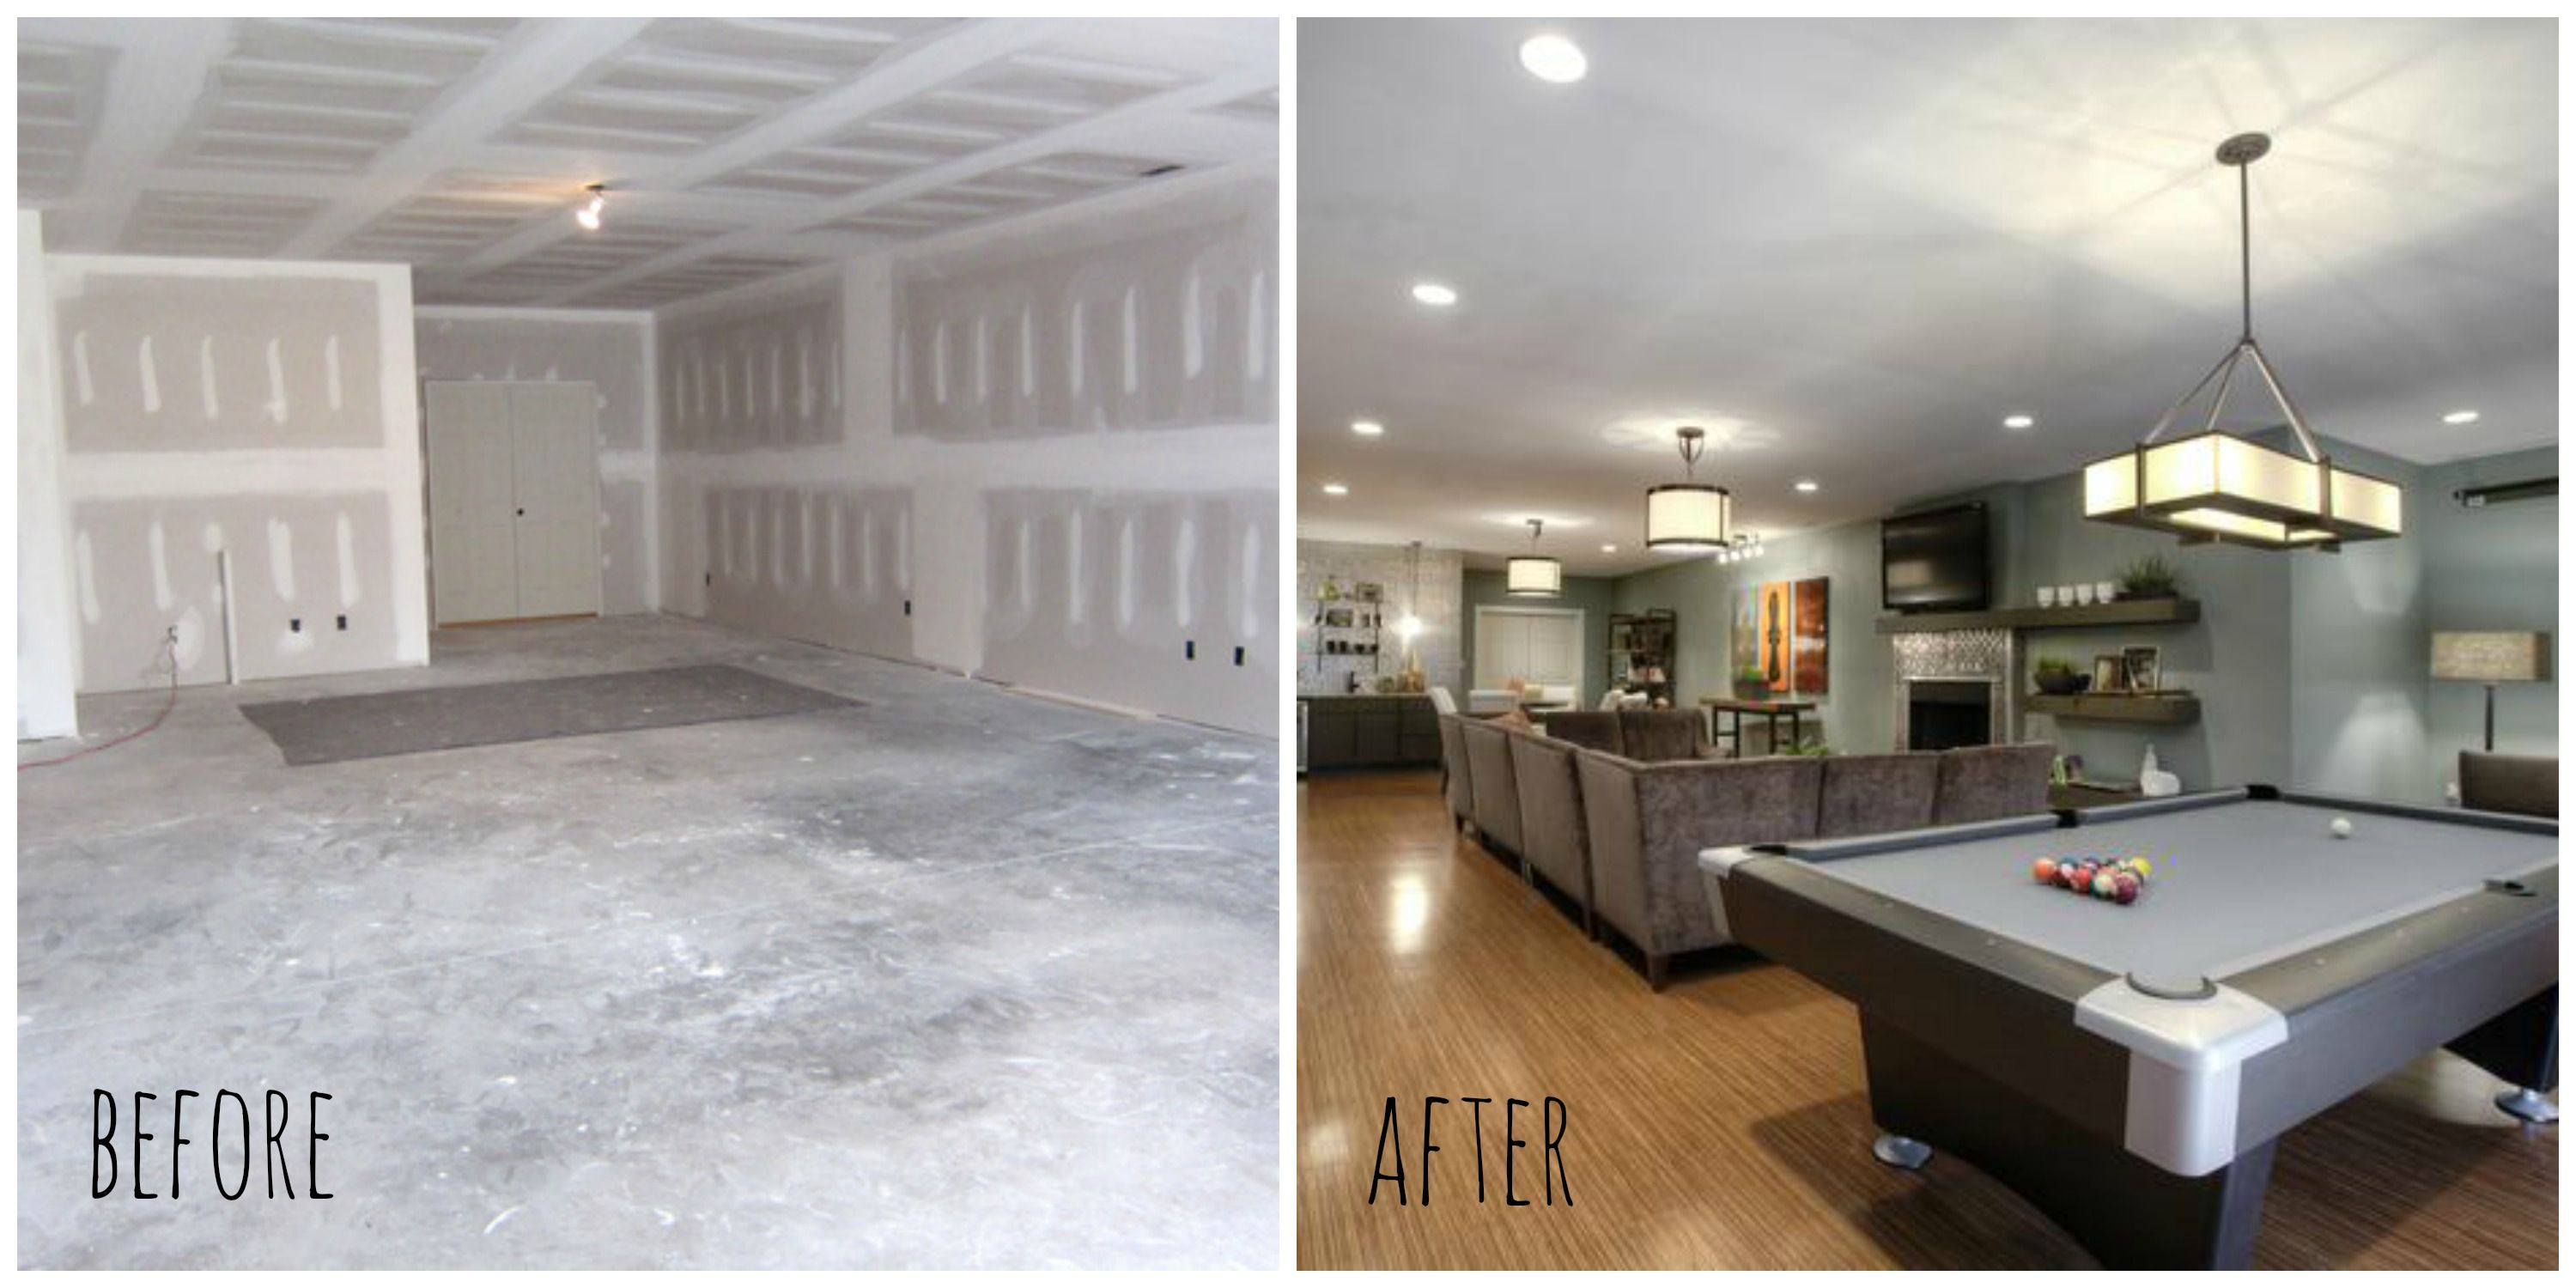 Renovated Basements Basement Renovation Before After  Beforeafter  Pinterest